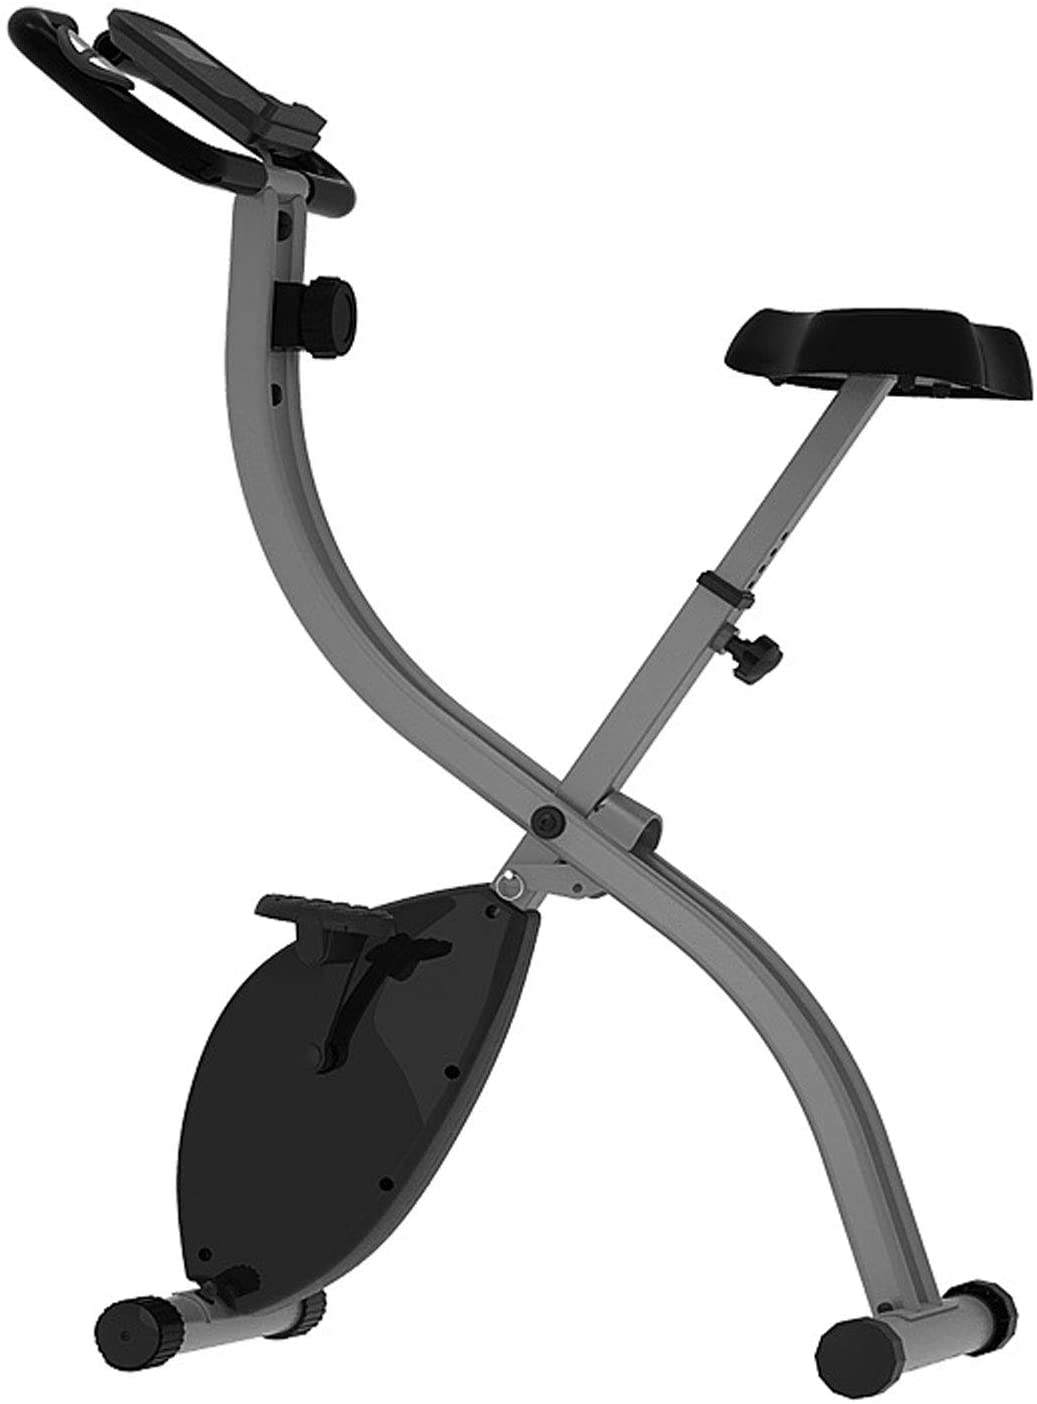 Douer Indoor Cycling Bicycle, Exercise Bike for Home, Fitness Bike with Pulse, with 8-Level Adjustable Magnetic Resistance, Easy Adjustable Seat, for Home Cardio Workout Bike Training